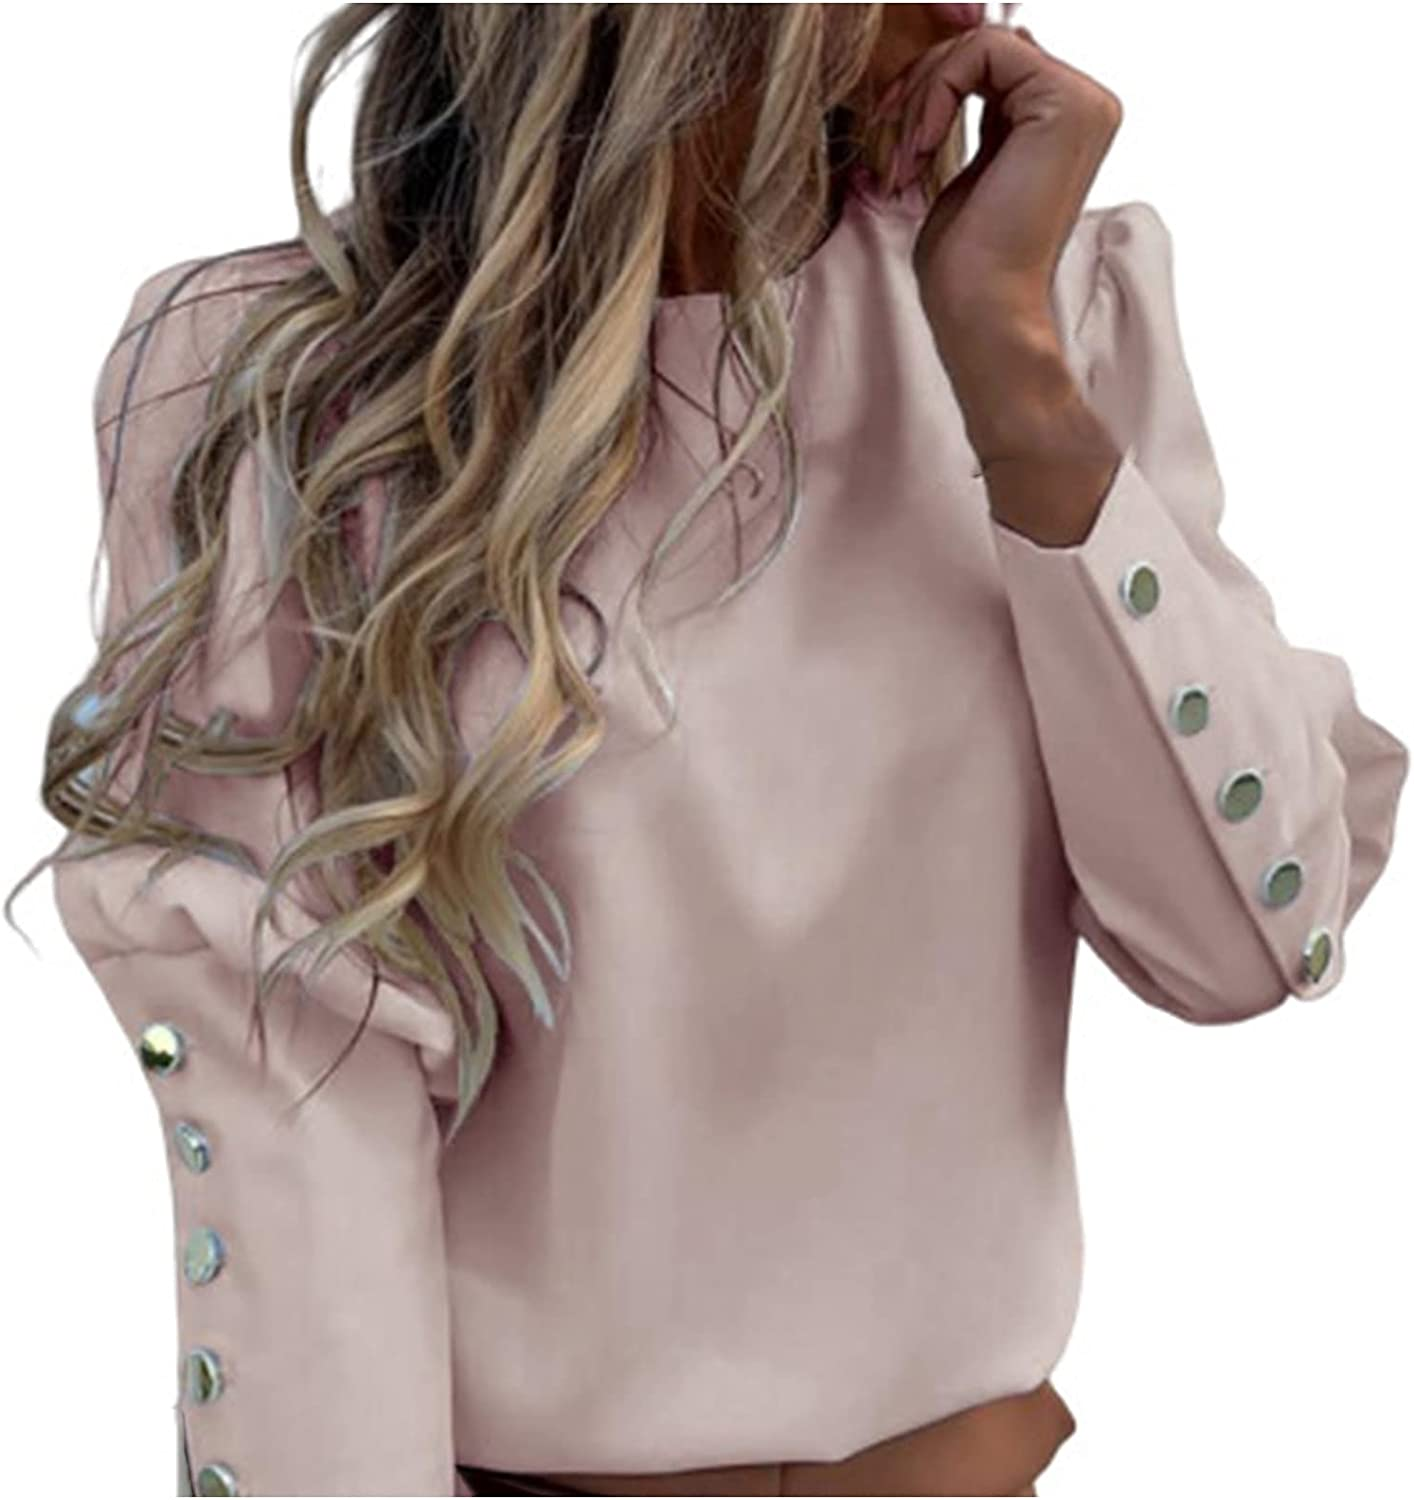 Oxodoi Womens Blouse Elegant Round Neck Top Loose Pullover Metal Button Long Sleeve T-Shirt Pineapple Letter Print Casual Tee